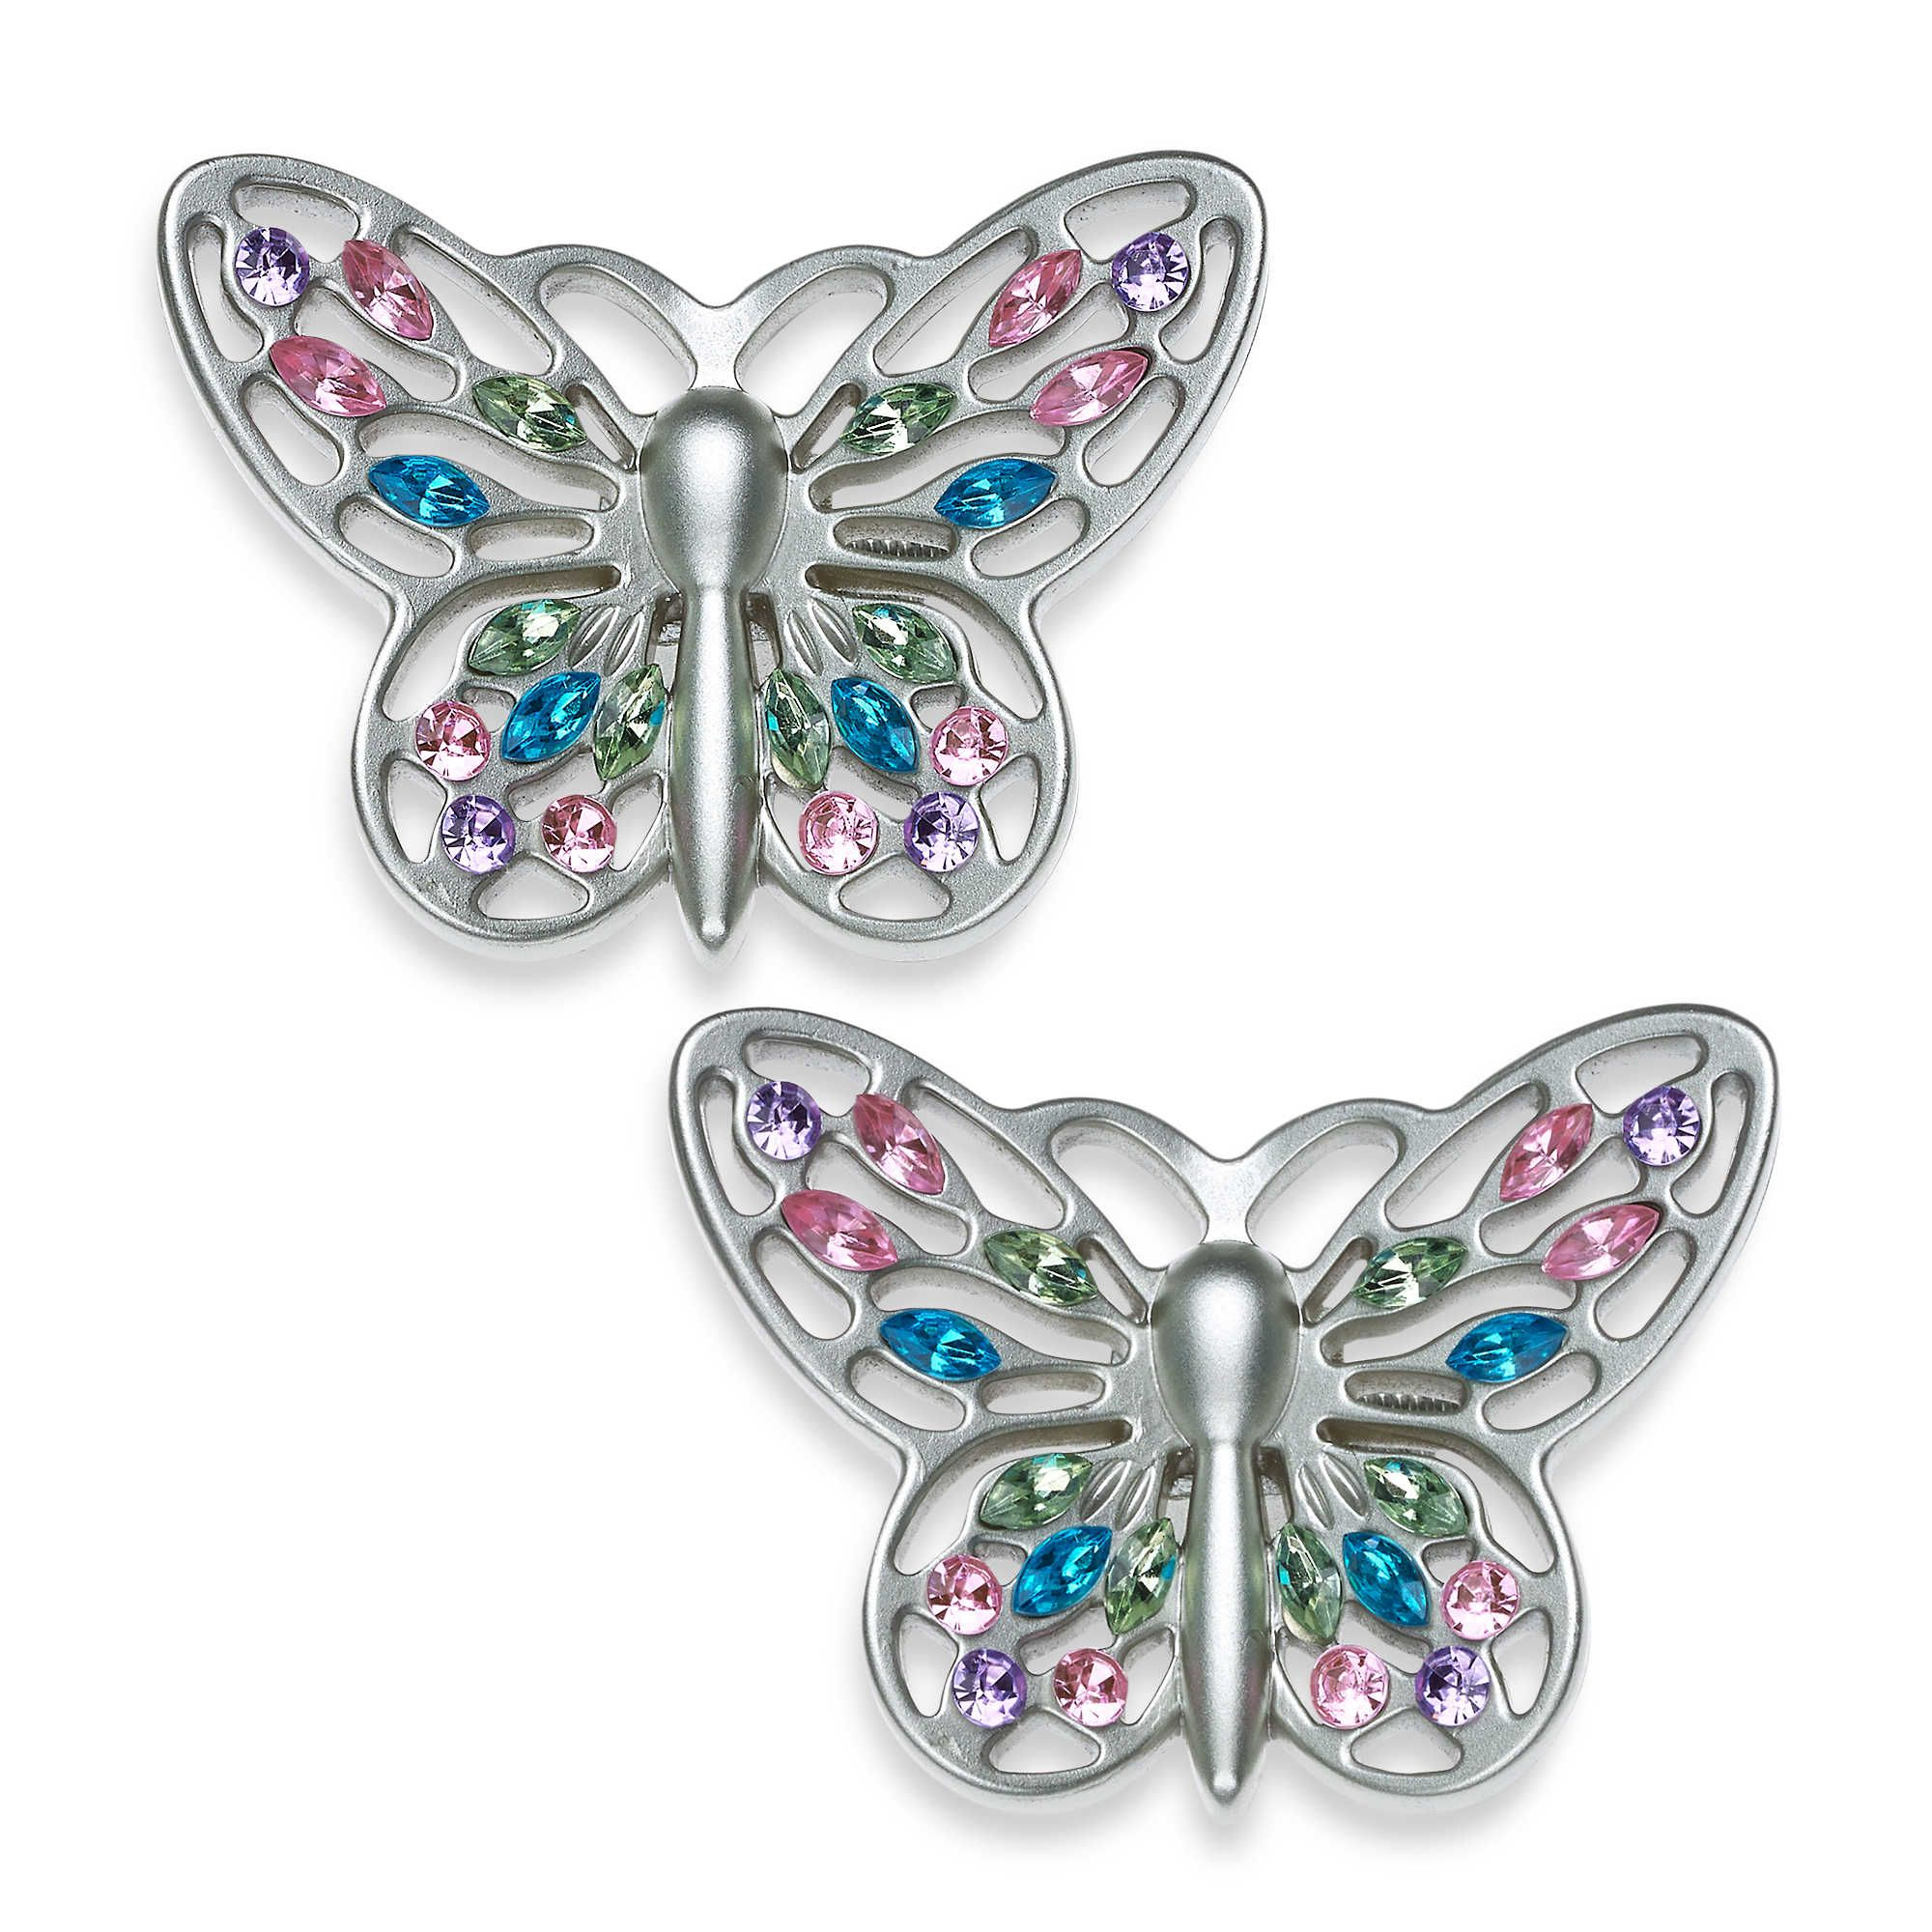 Cambria My Room Jeweled Butterfly Finial In Brushed Nickel Set